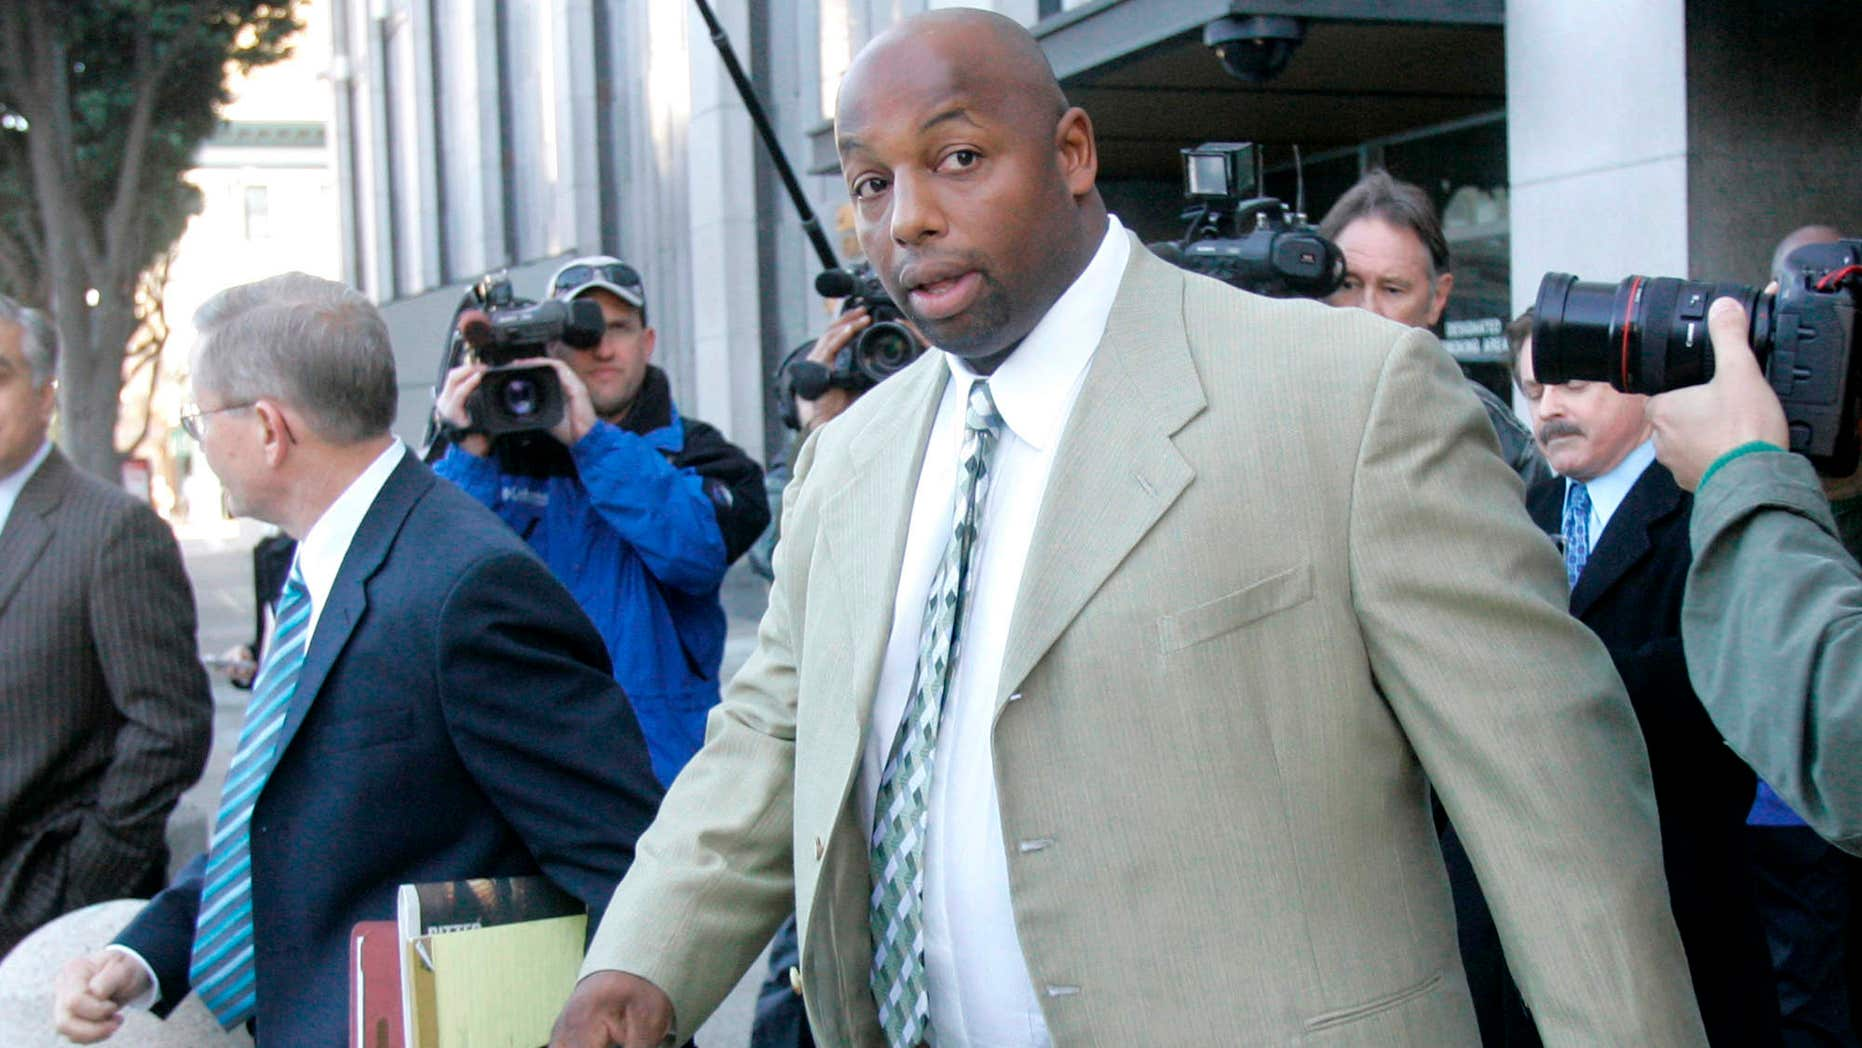 File - In this Jan. 18, 2008 file photo, former NFL football player Dana Stubblefield leaves a federal courthouse in San Francisco.